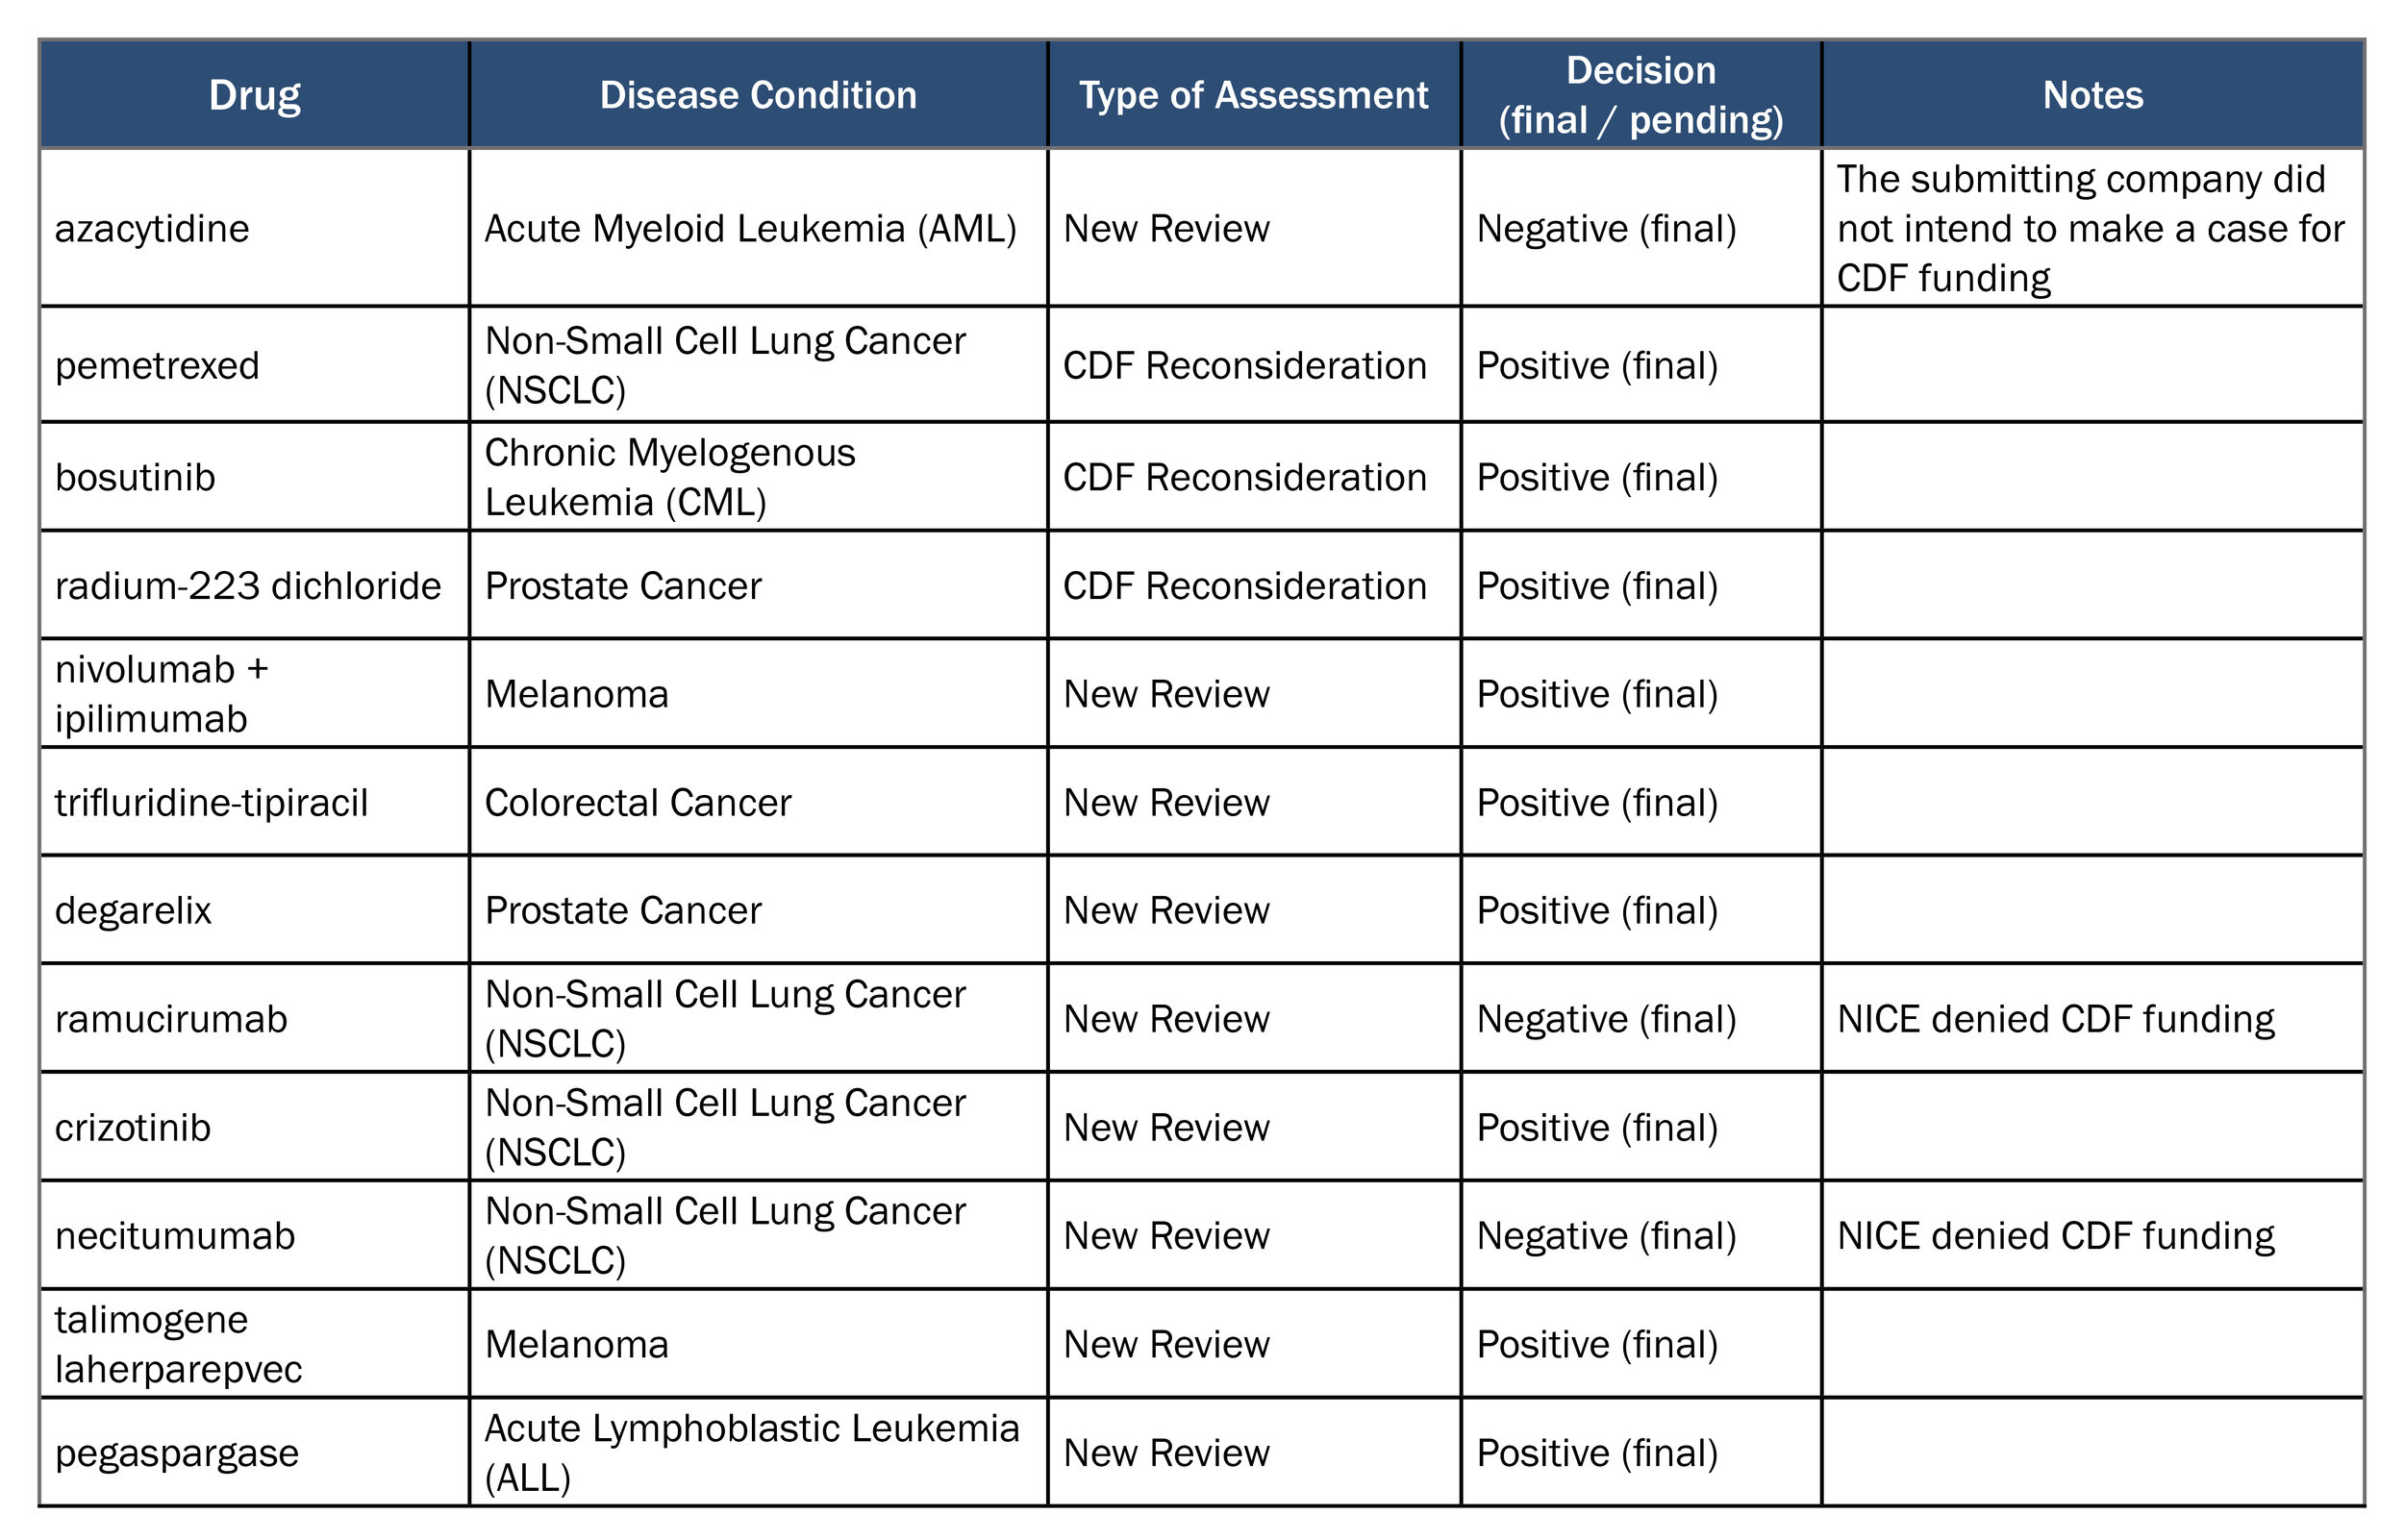 Table 1: Completed NICE oncology assessments since implementation of the revised technology appraisal process